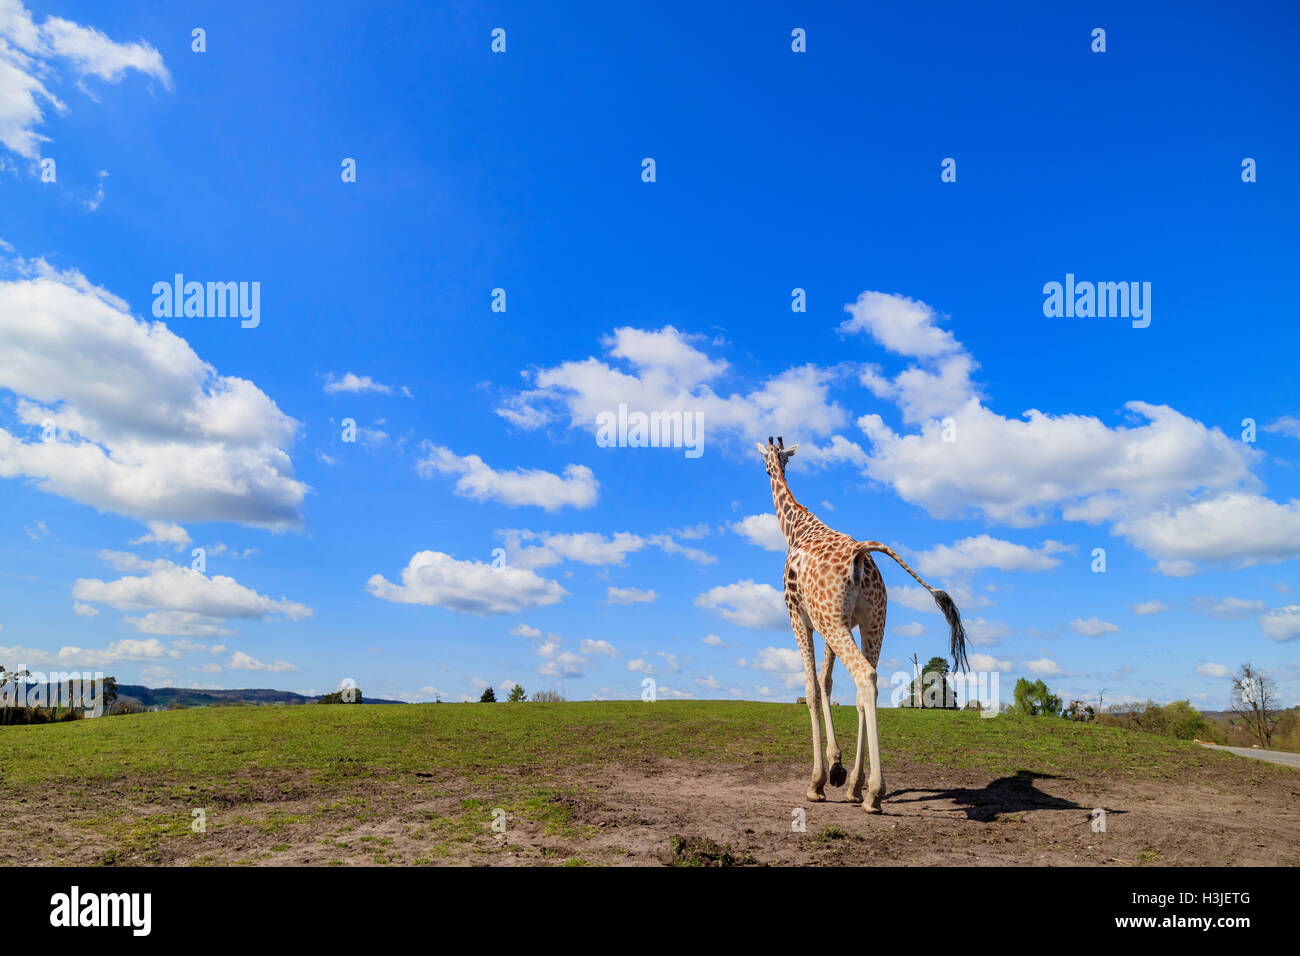 Giraffe walking in the beautiful West Midland Safari Park on APR 23, 2016 at Spring Grove, United Kingdom - Stock Image